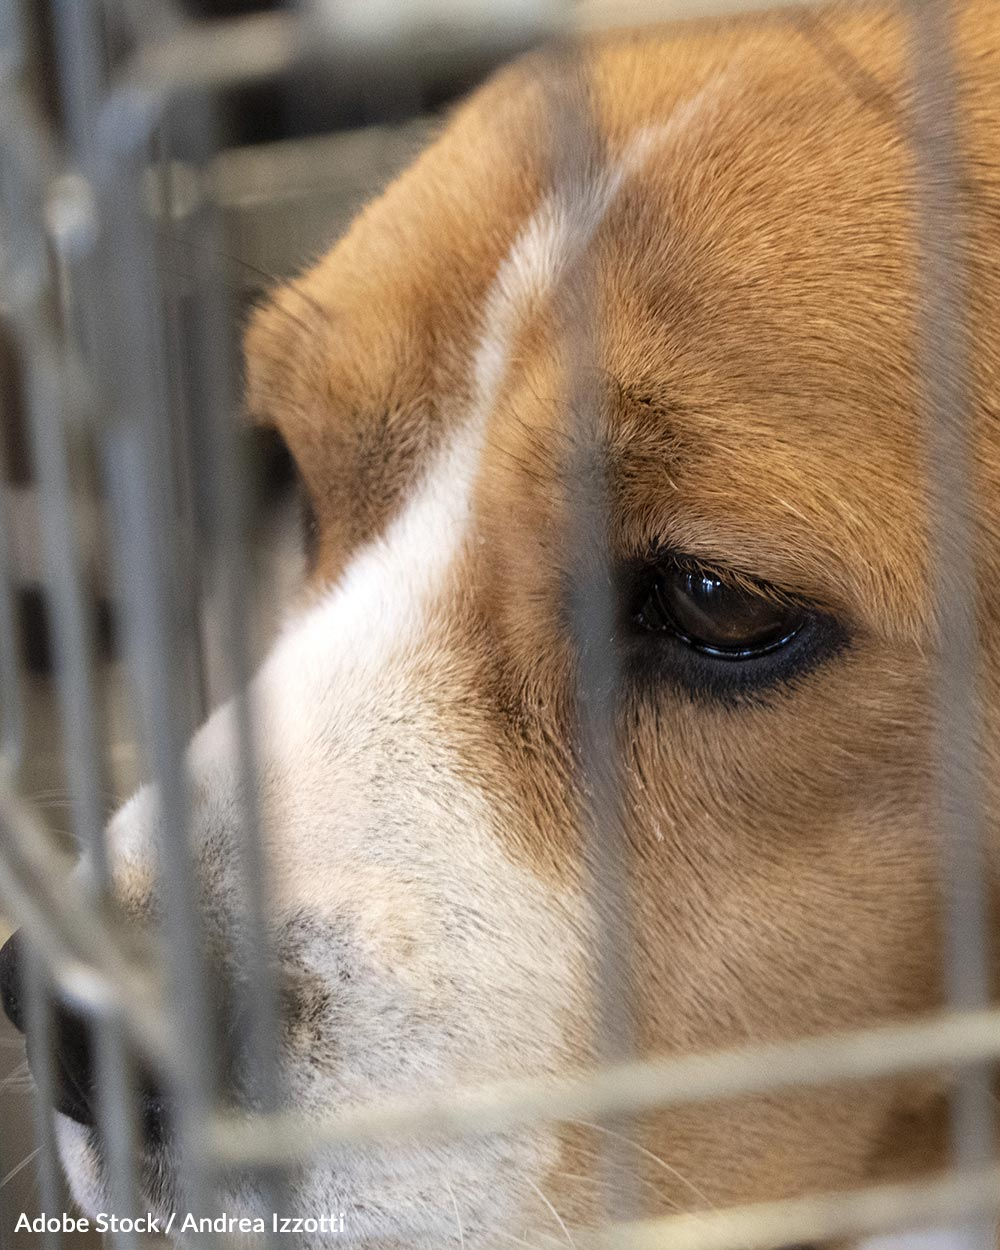 Veterinarians and lawmakers are calling on Wayne State University to eliminate unnecessary animal testing.